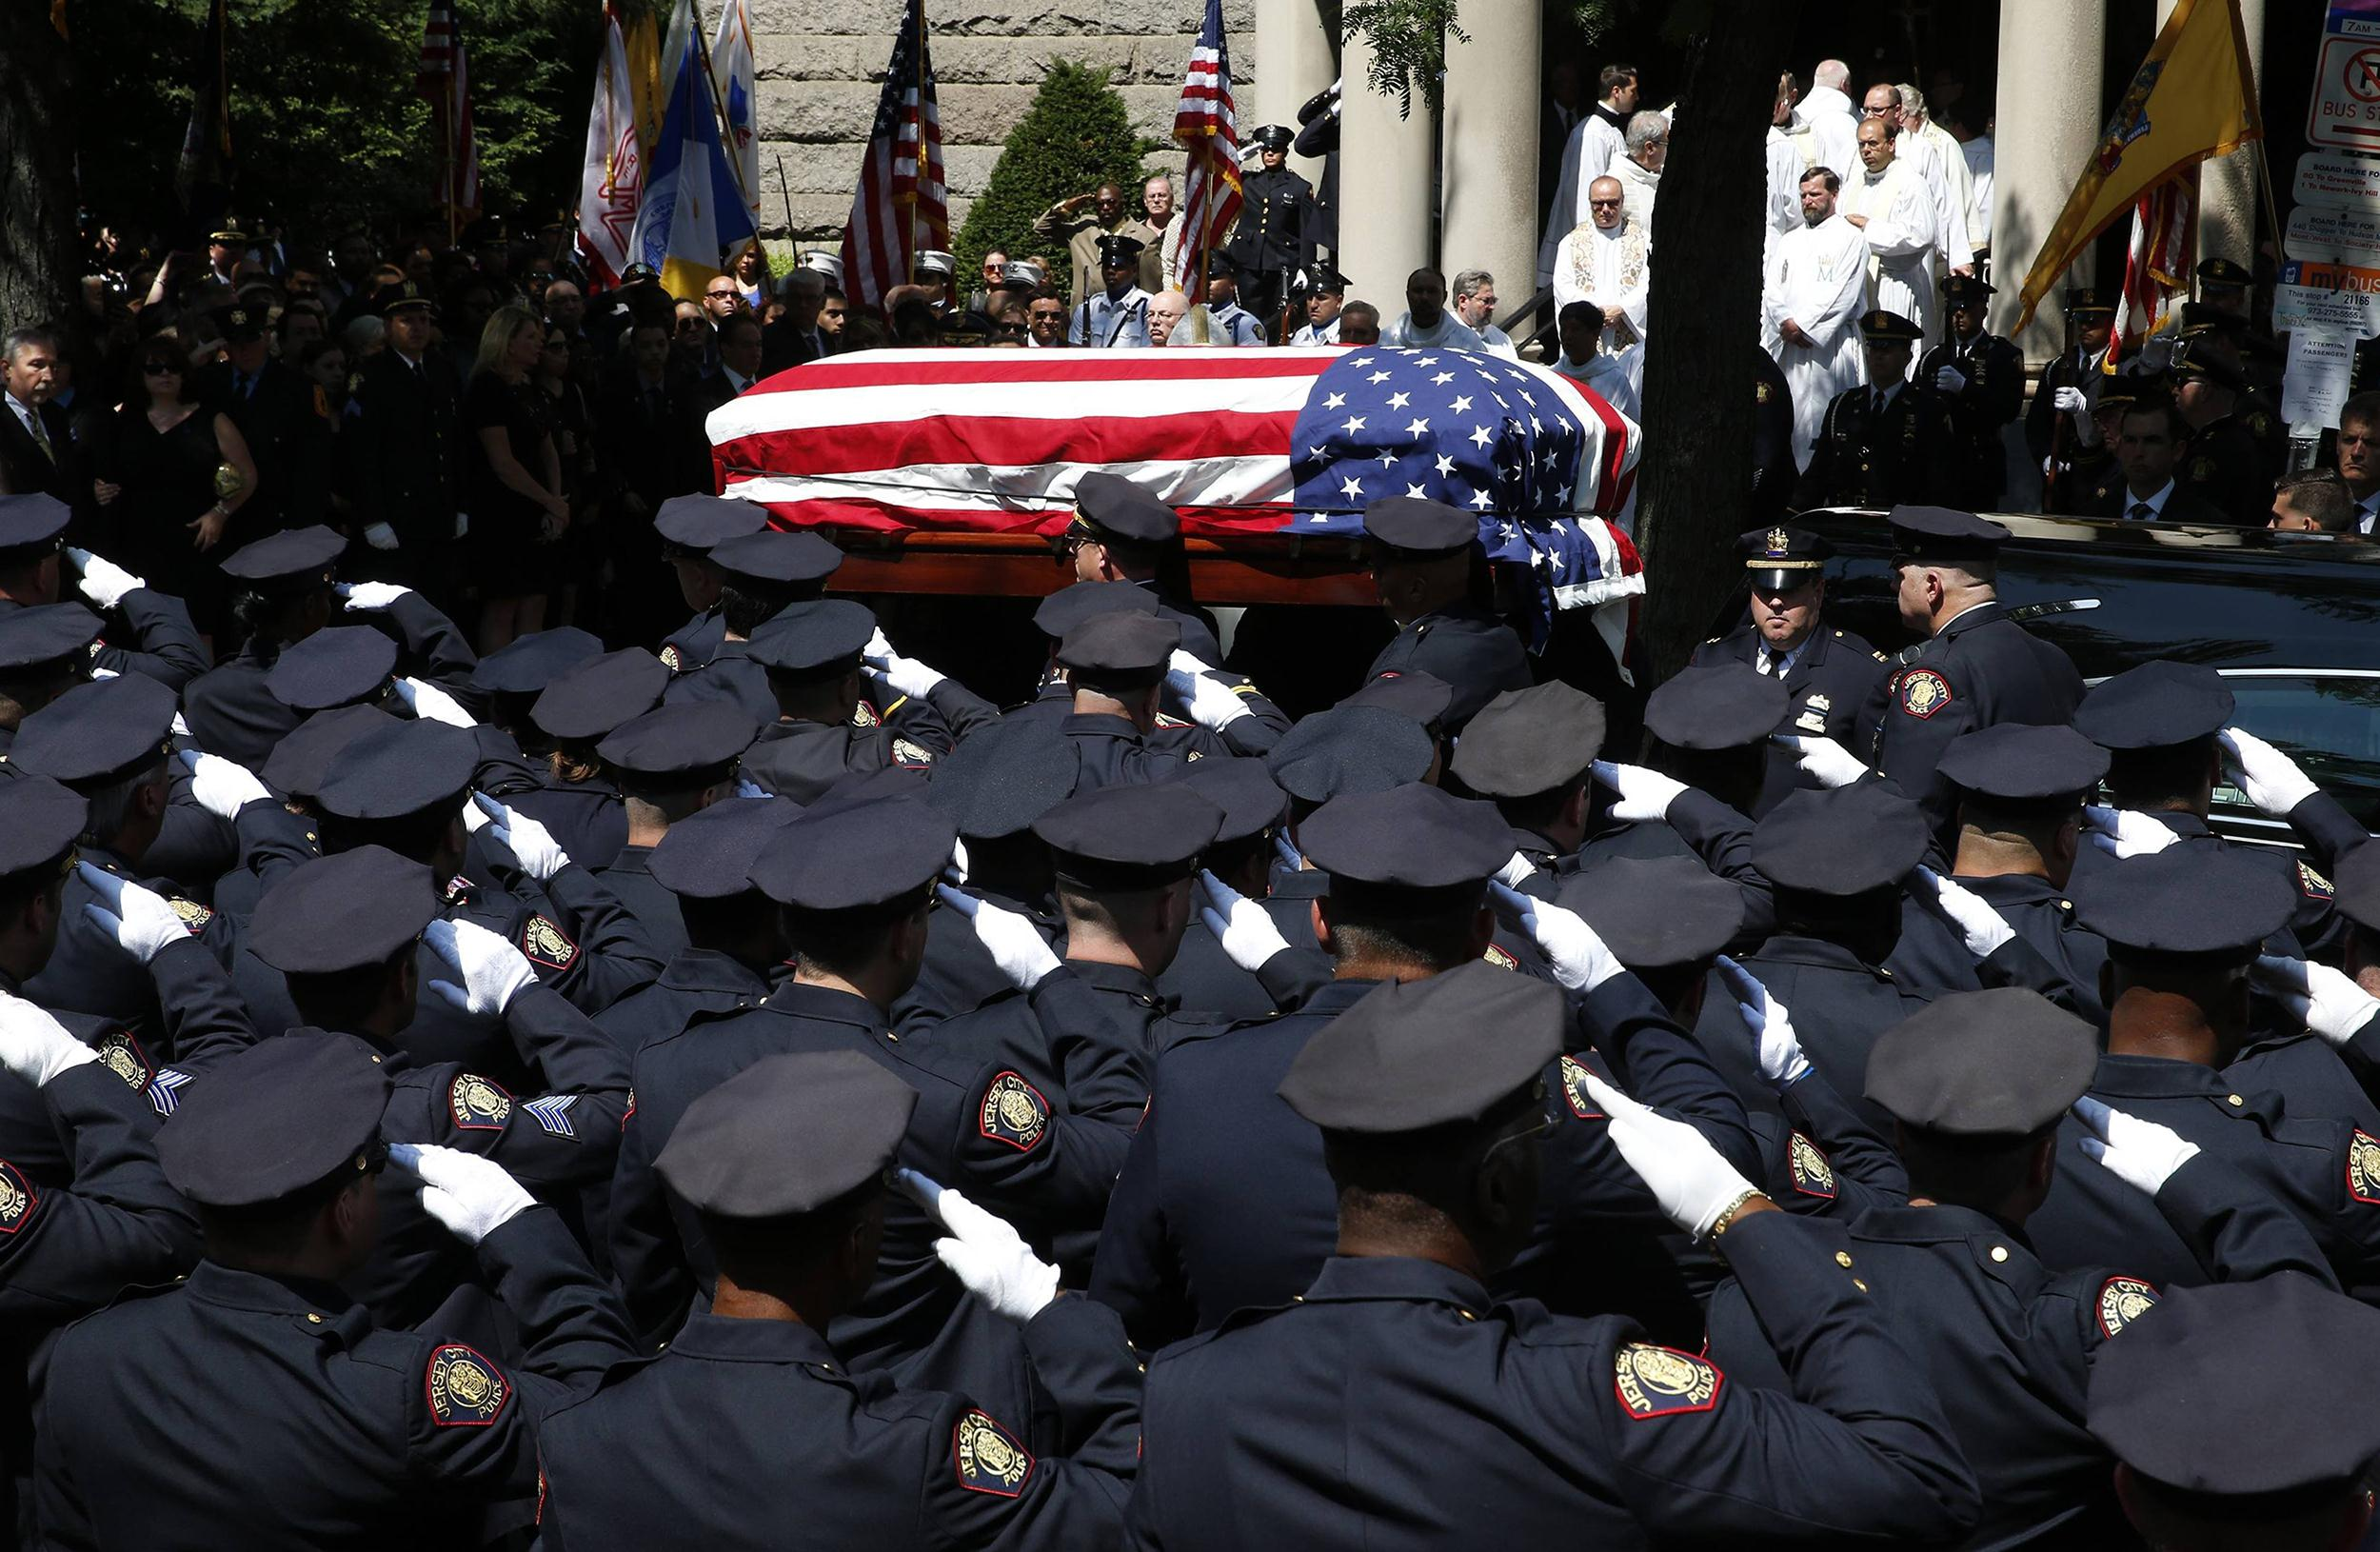 Image: Police officers salute as the casket carrying slain Jersey City police officer Melvin Santiago is carried into St. Aloysius Catholic Church for his funeral service in Jersey City